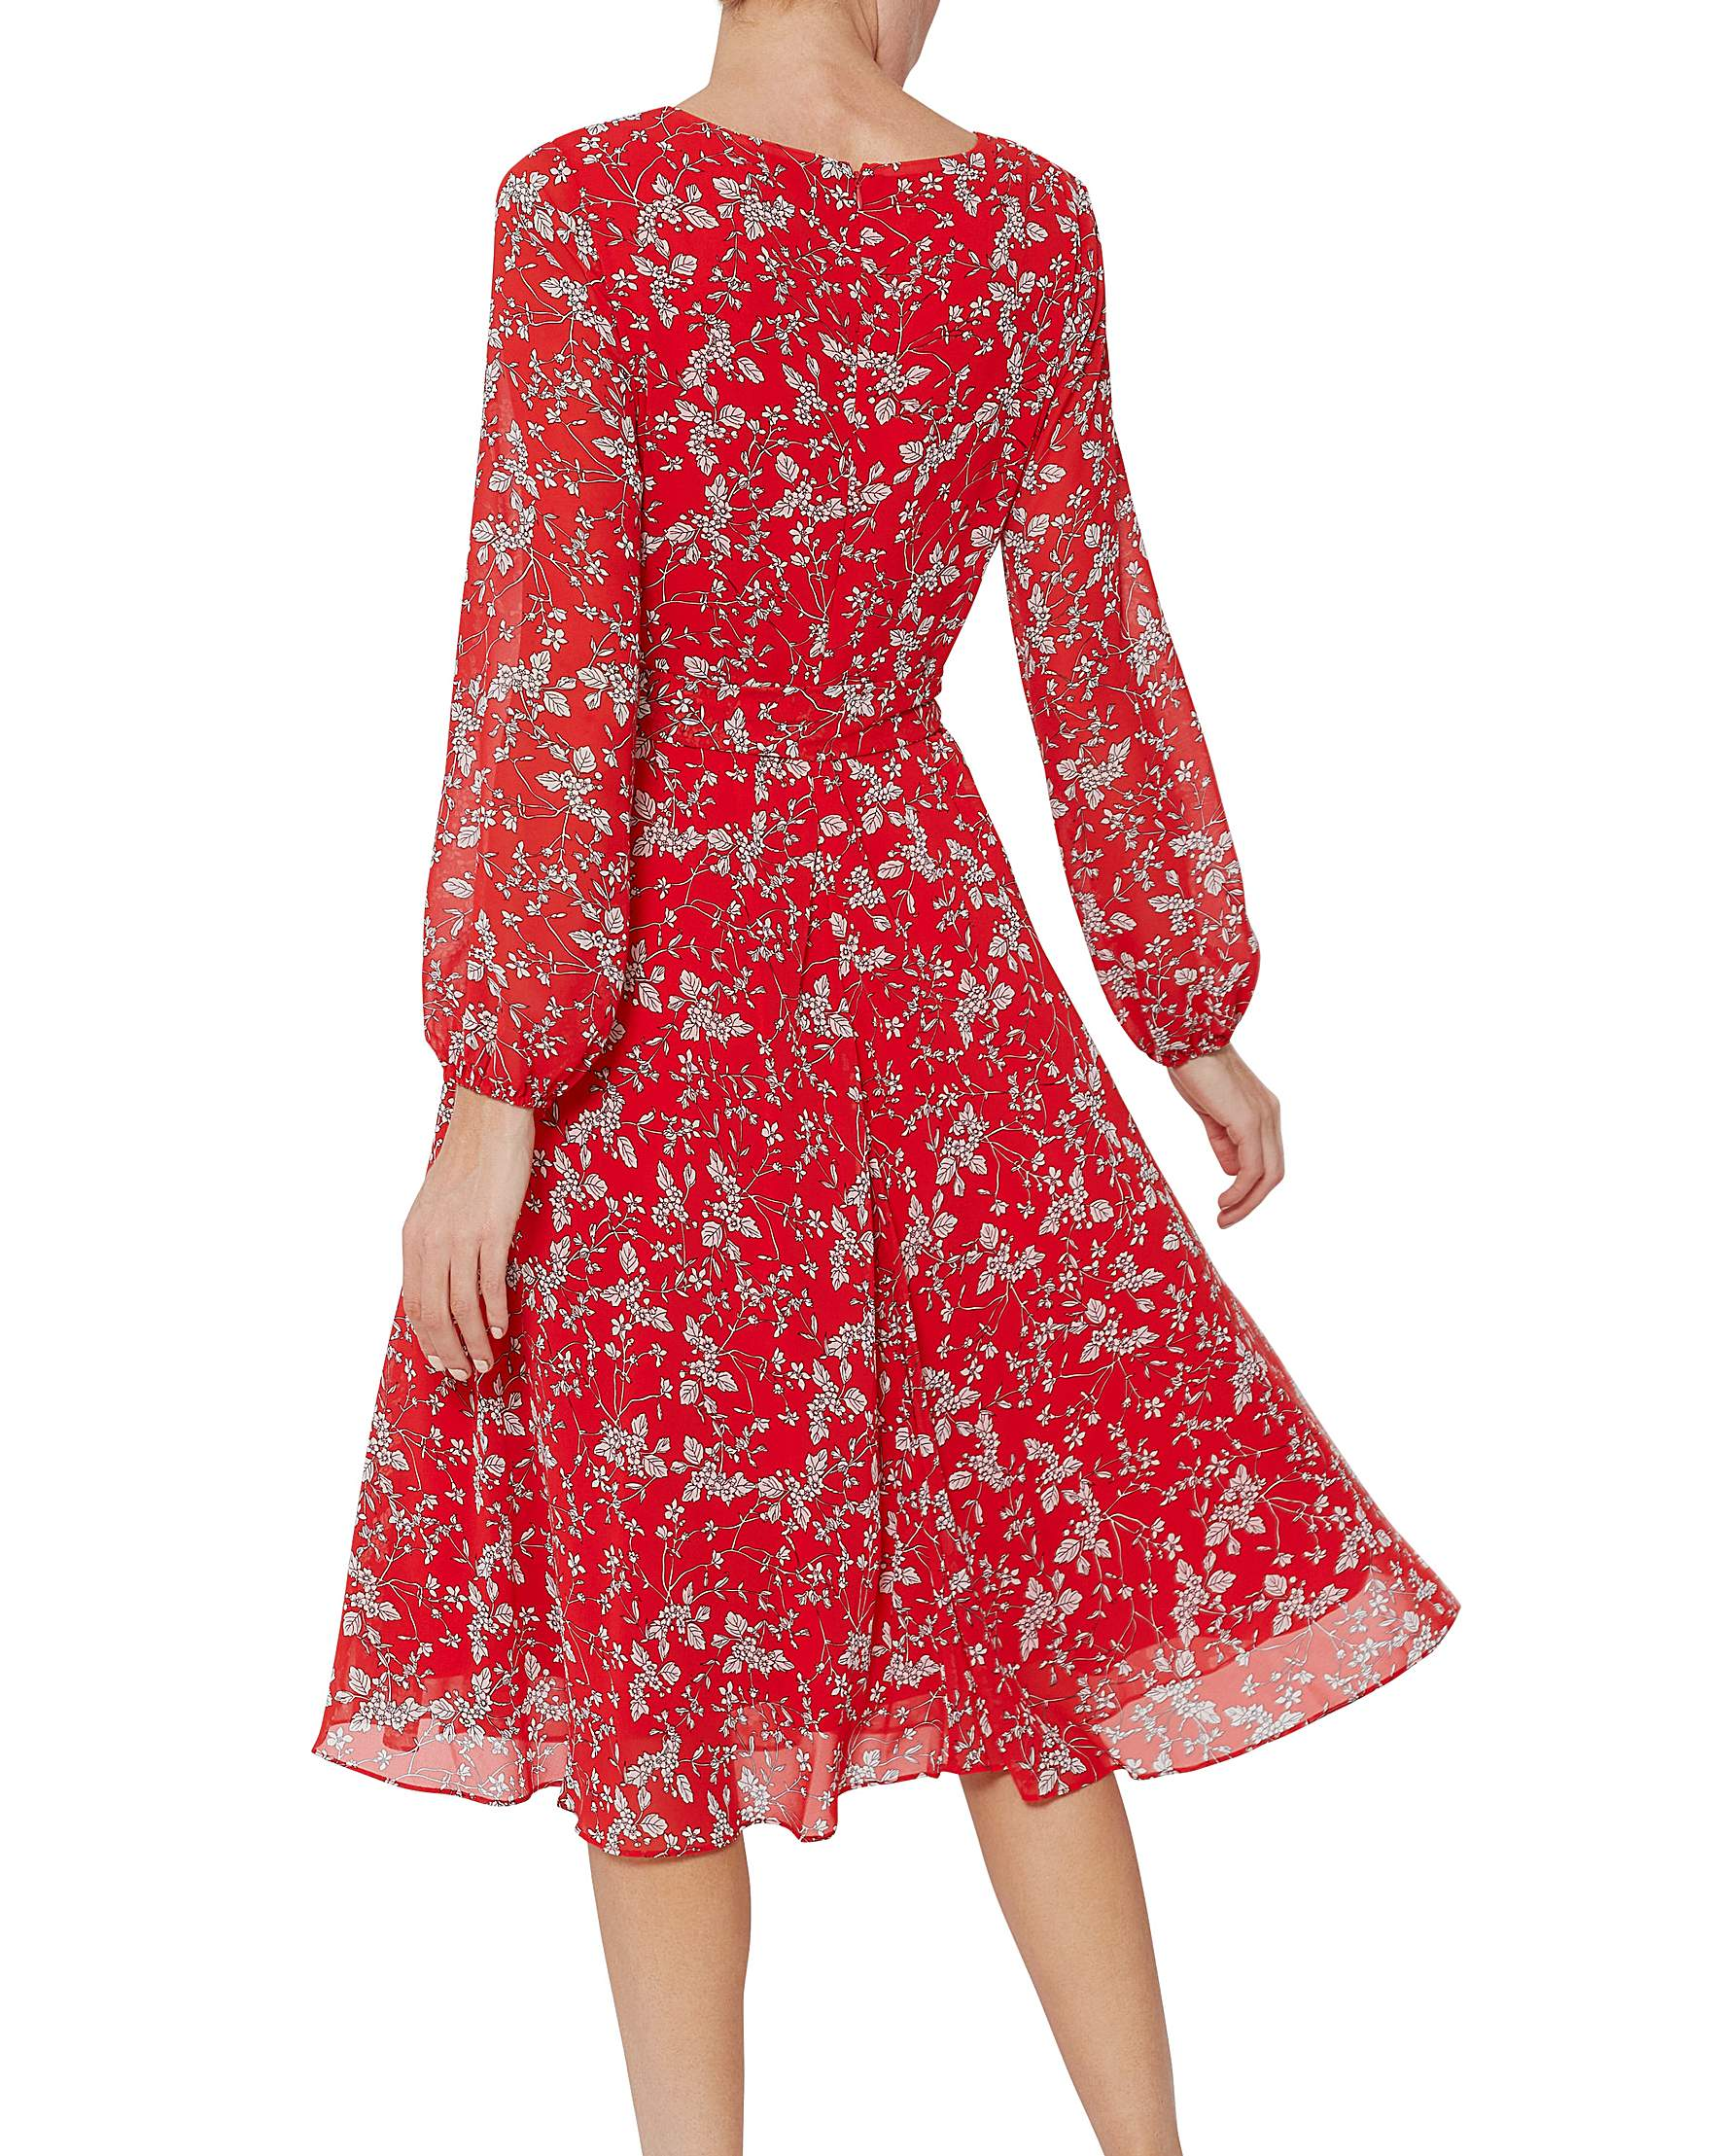 77b31721f802 Gina Bacconi Ridley Floral Dress | J D Williams